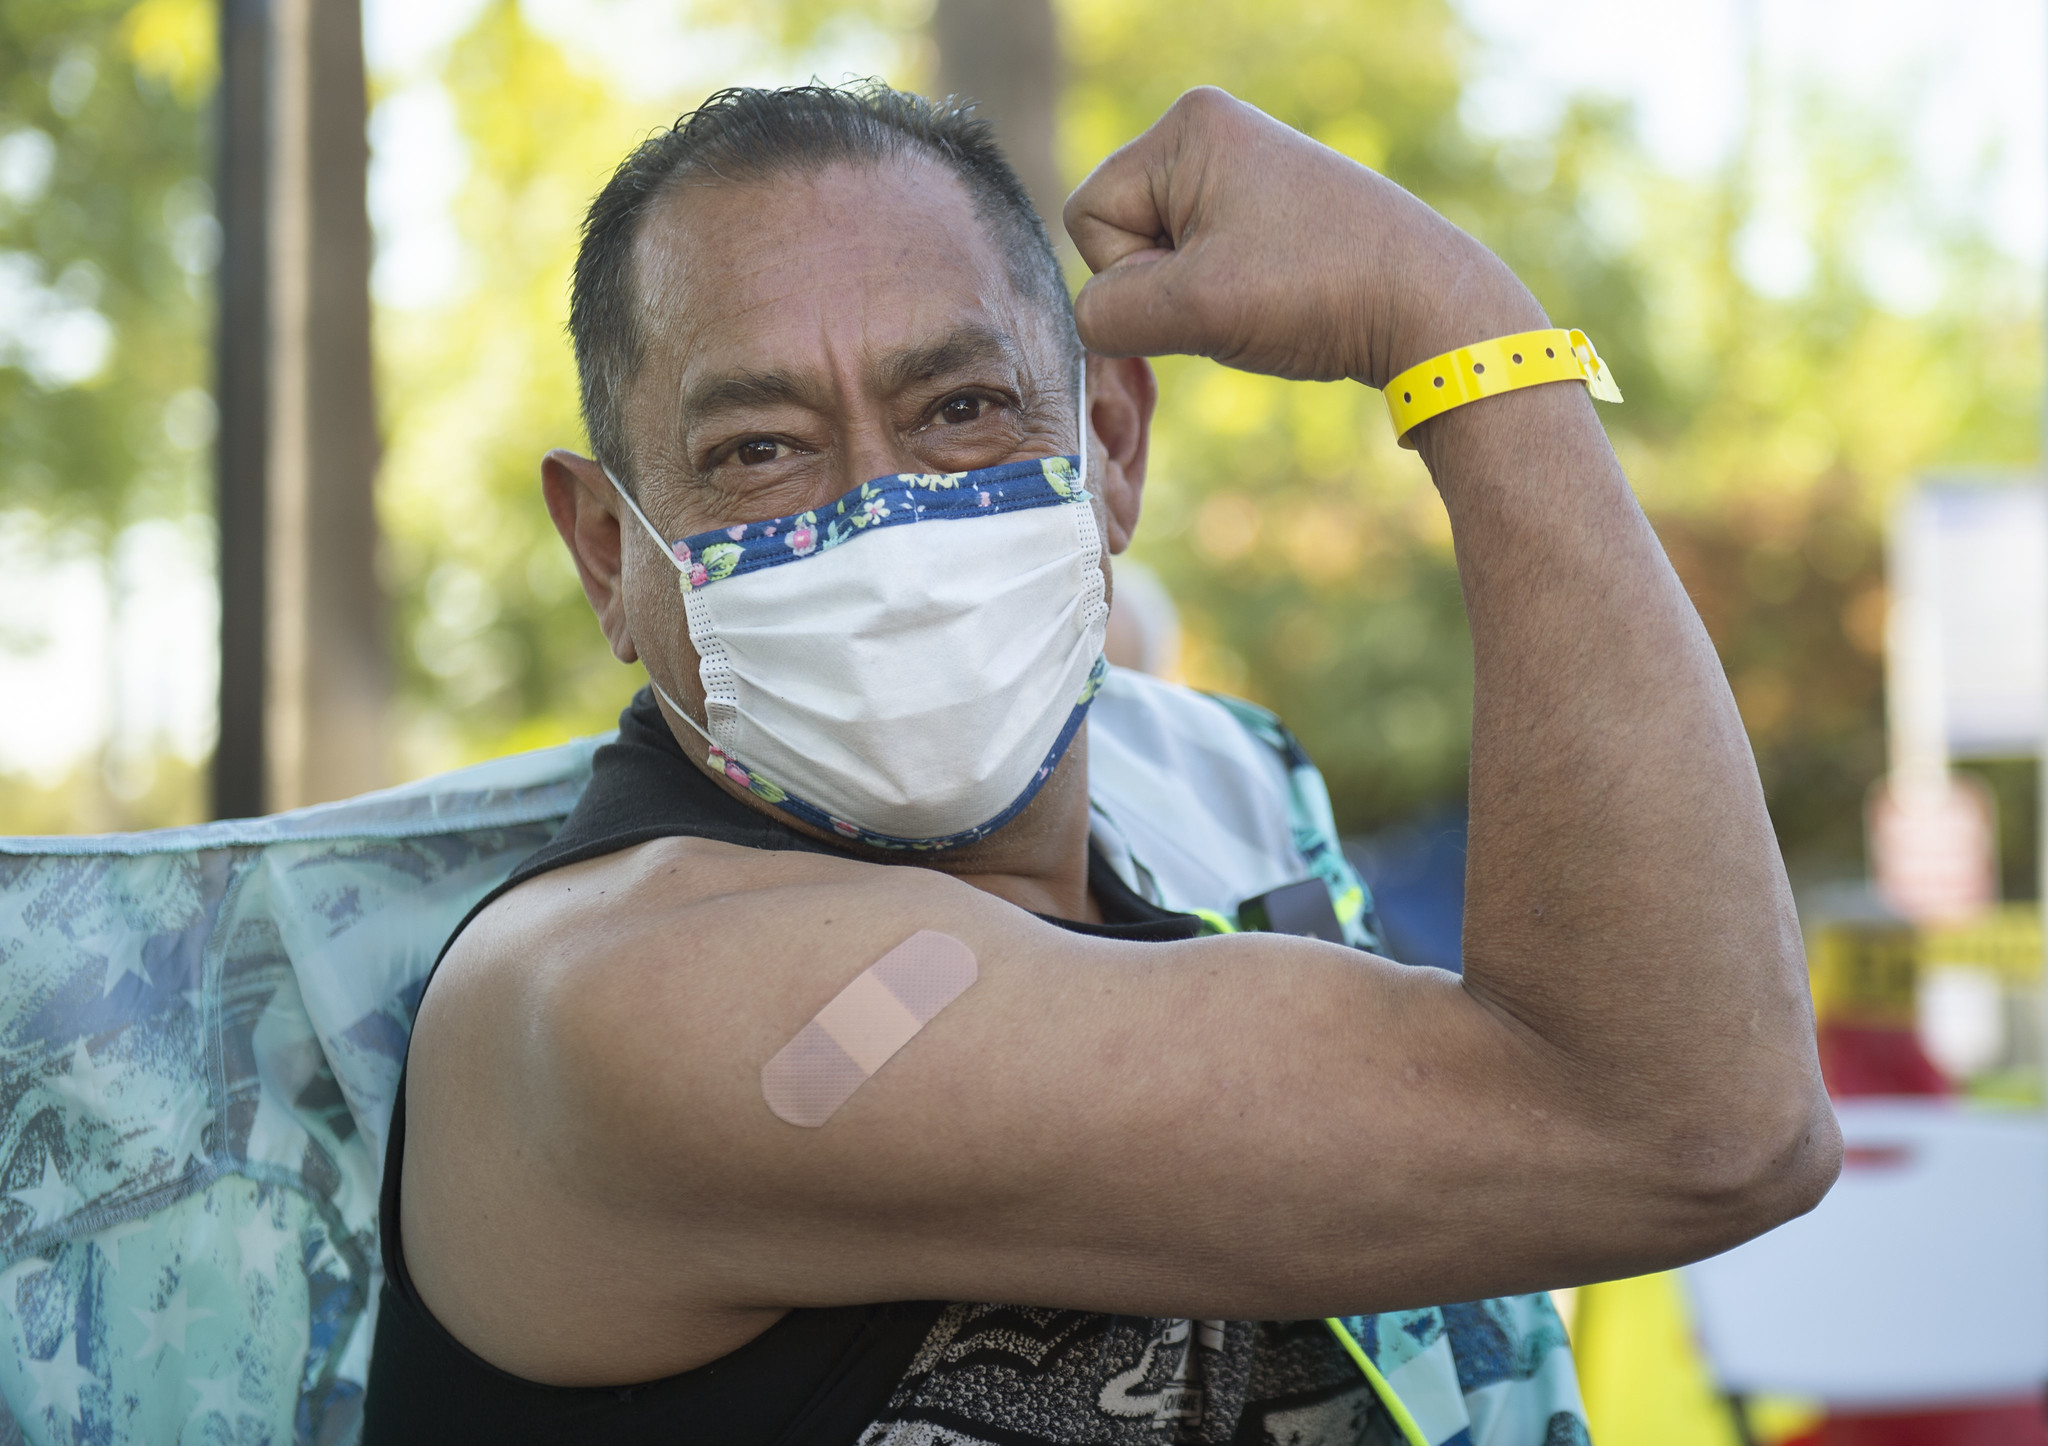 An elderly resident shows off the arm where he was vaccinated.